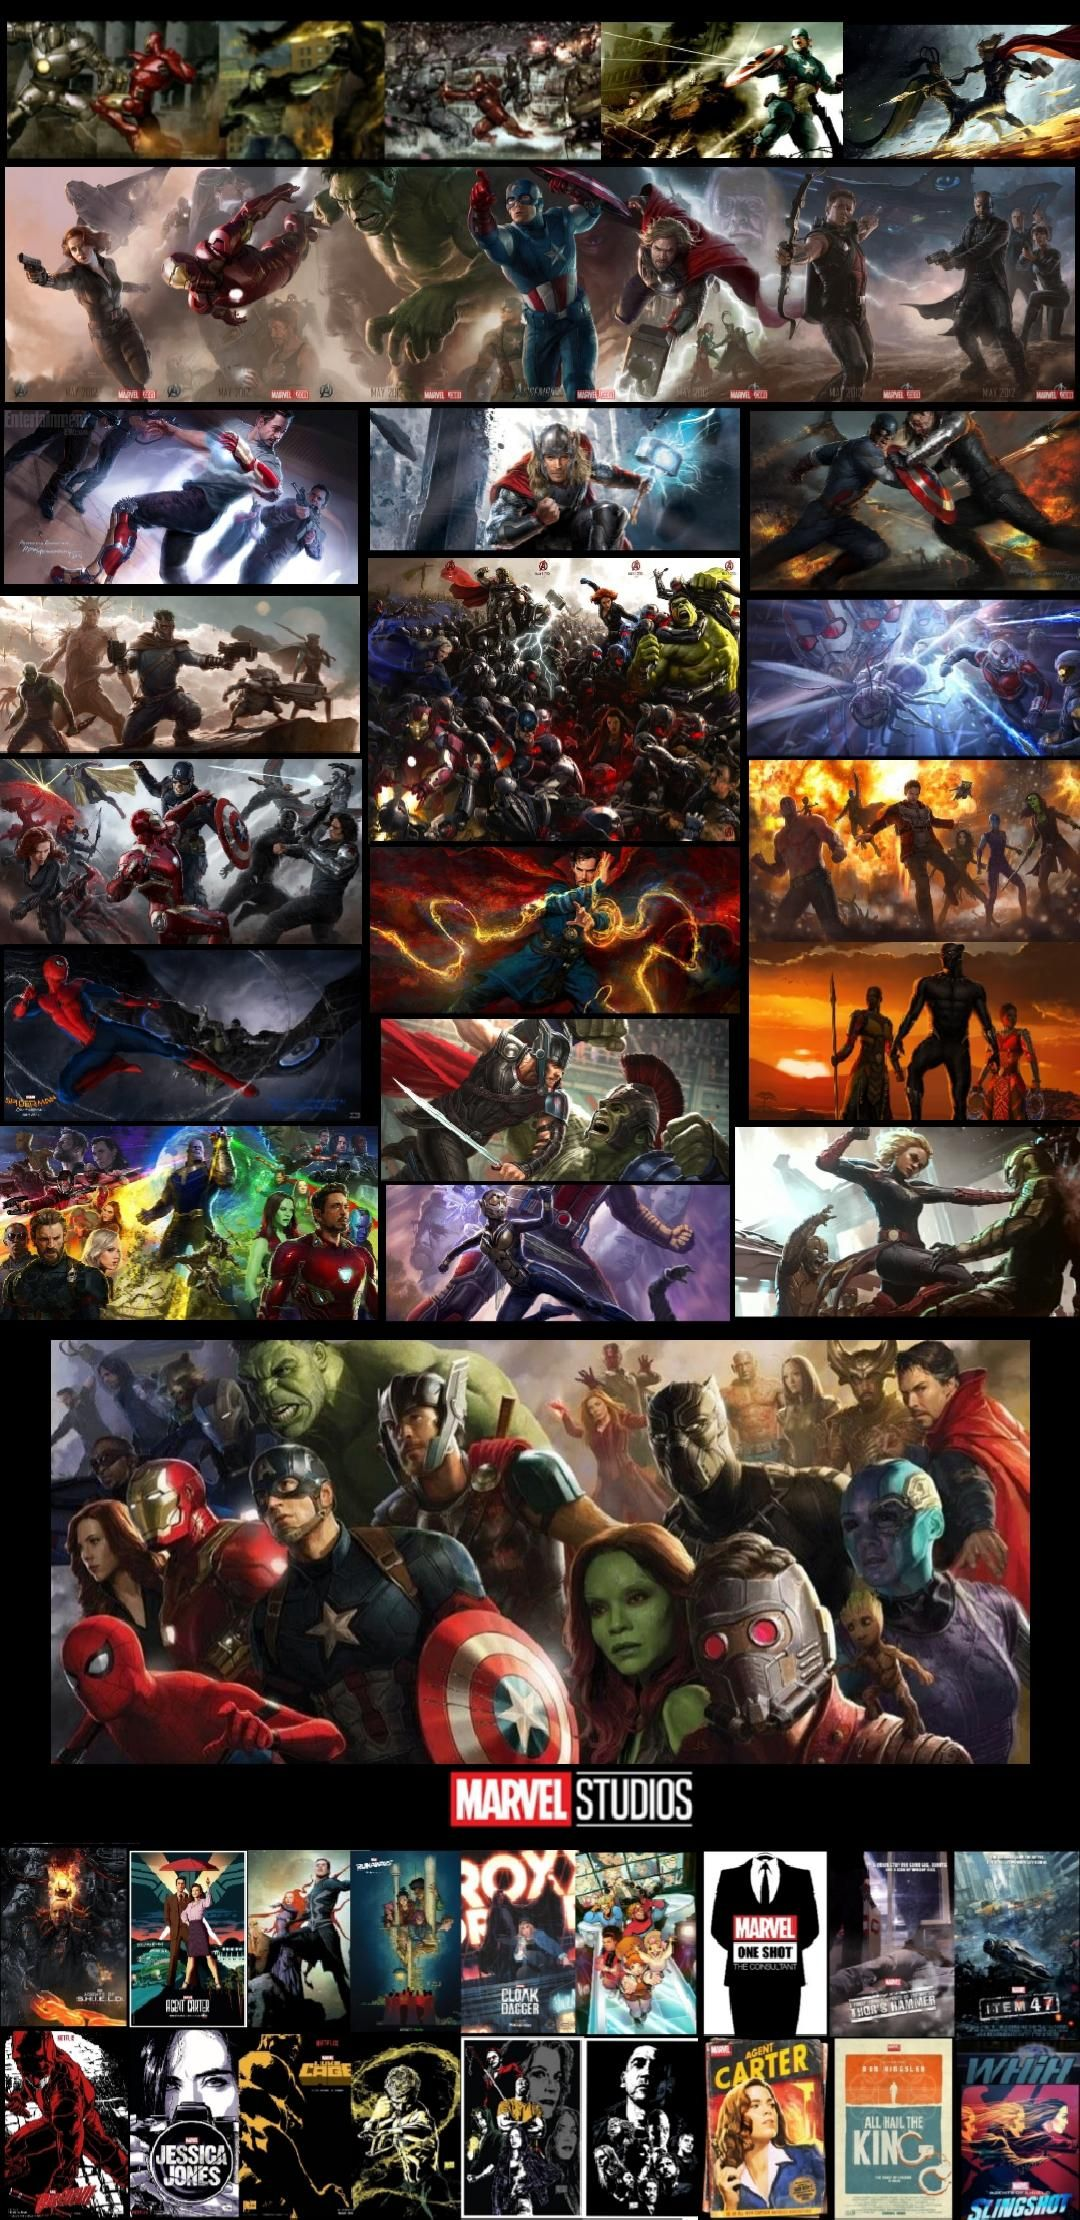 An mcu resume i made using concept arts and my phone